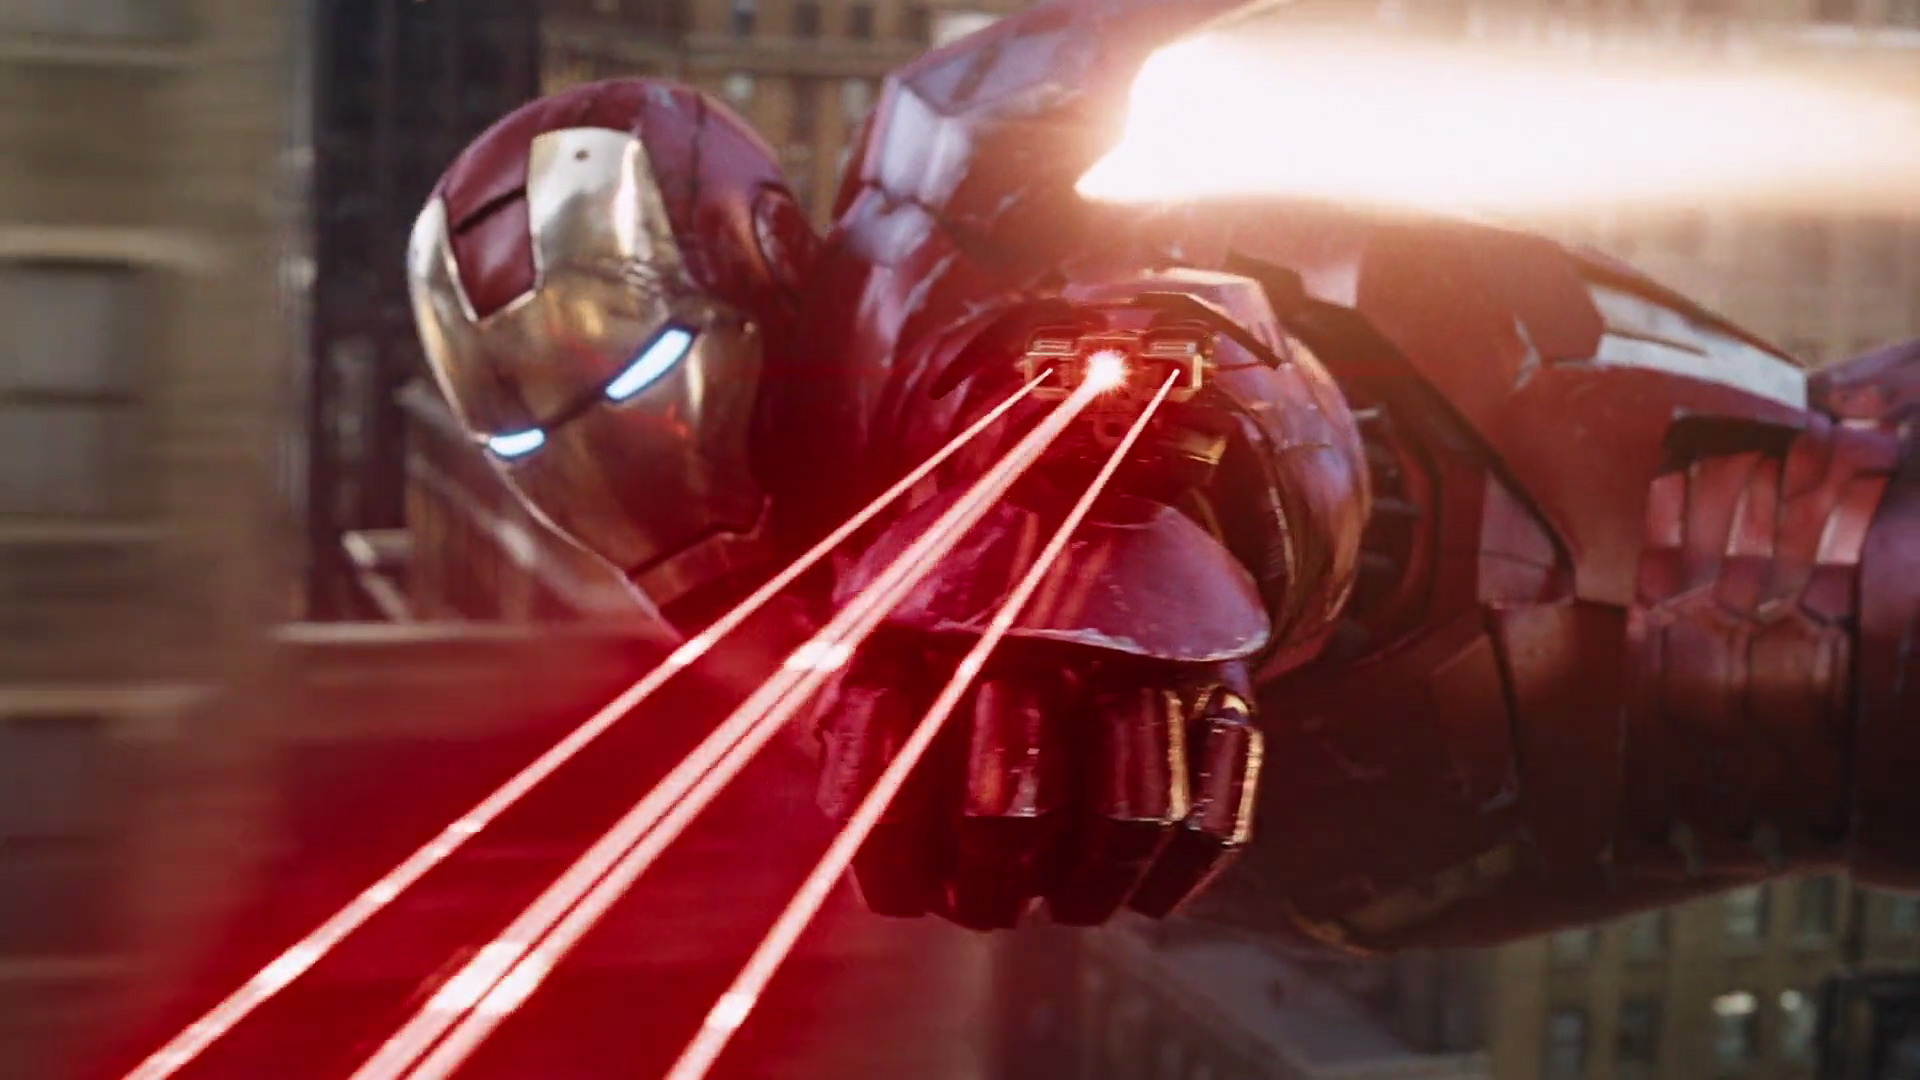 The-Avengers-Climax-Iron-Man-the-avengers-34726317-1920-1080